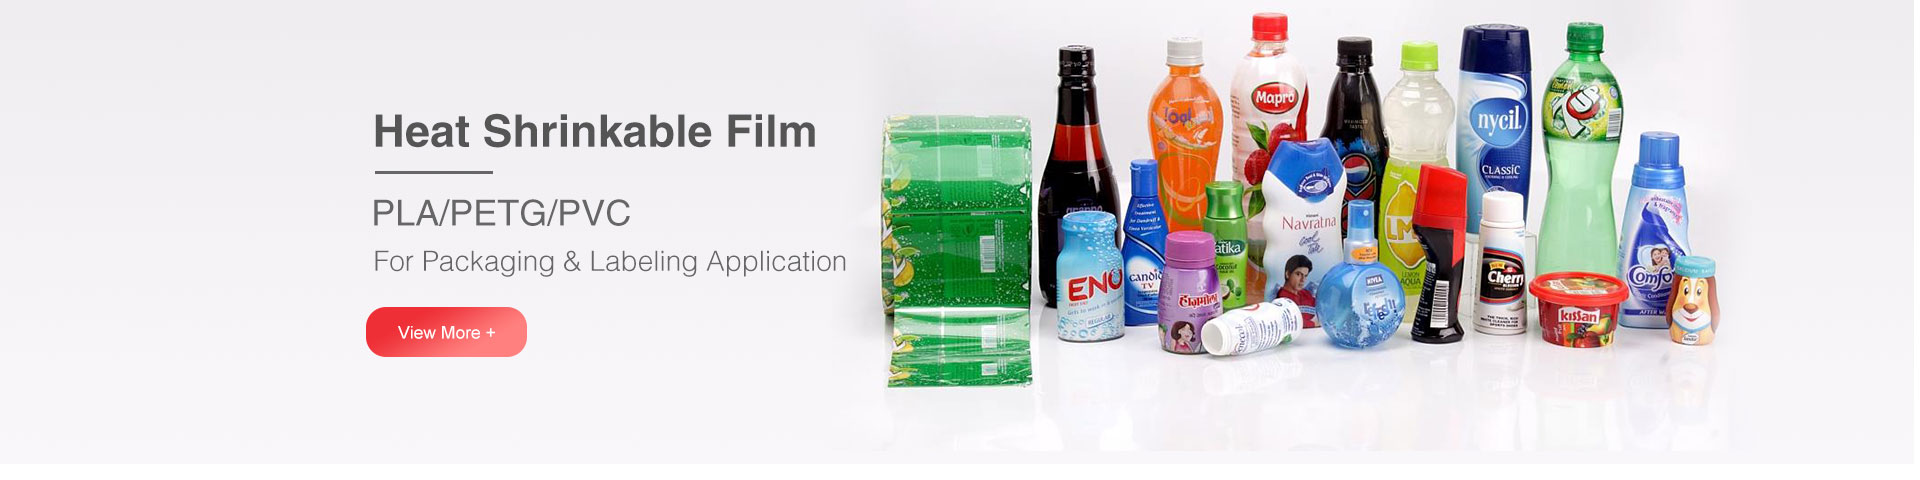 Heat Shrinkable Film